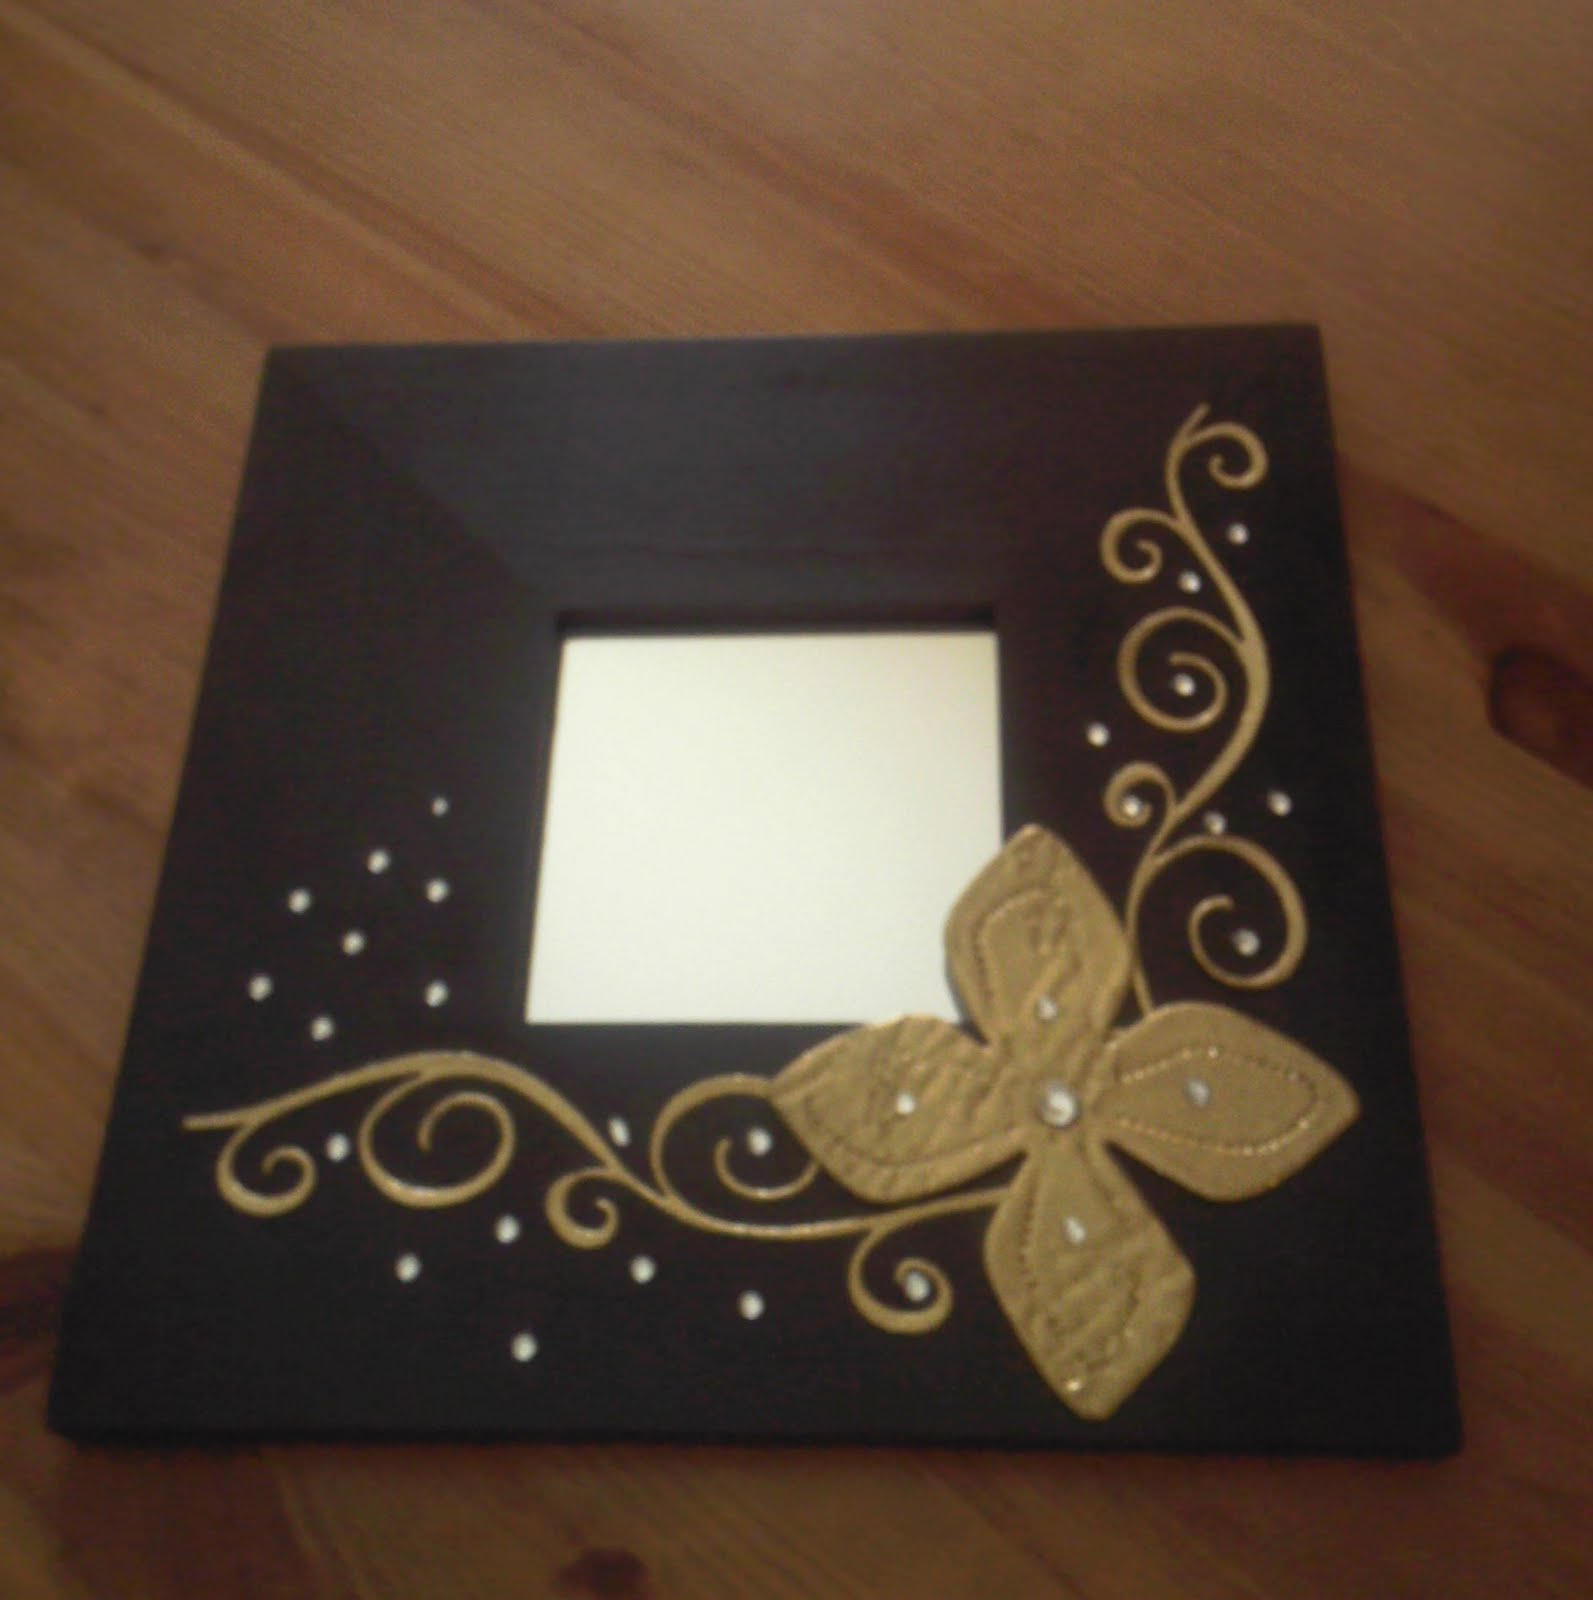 playtime: decorated mirrors